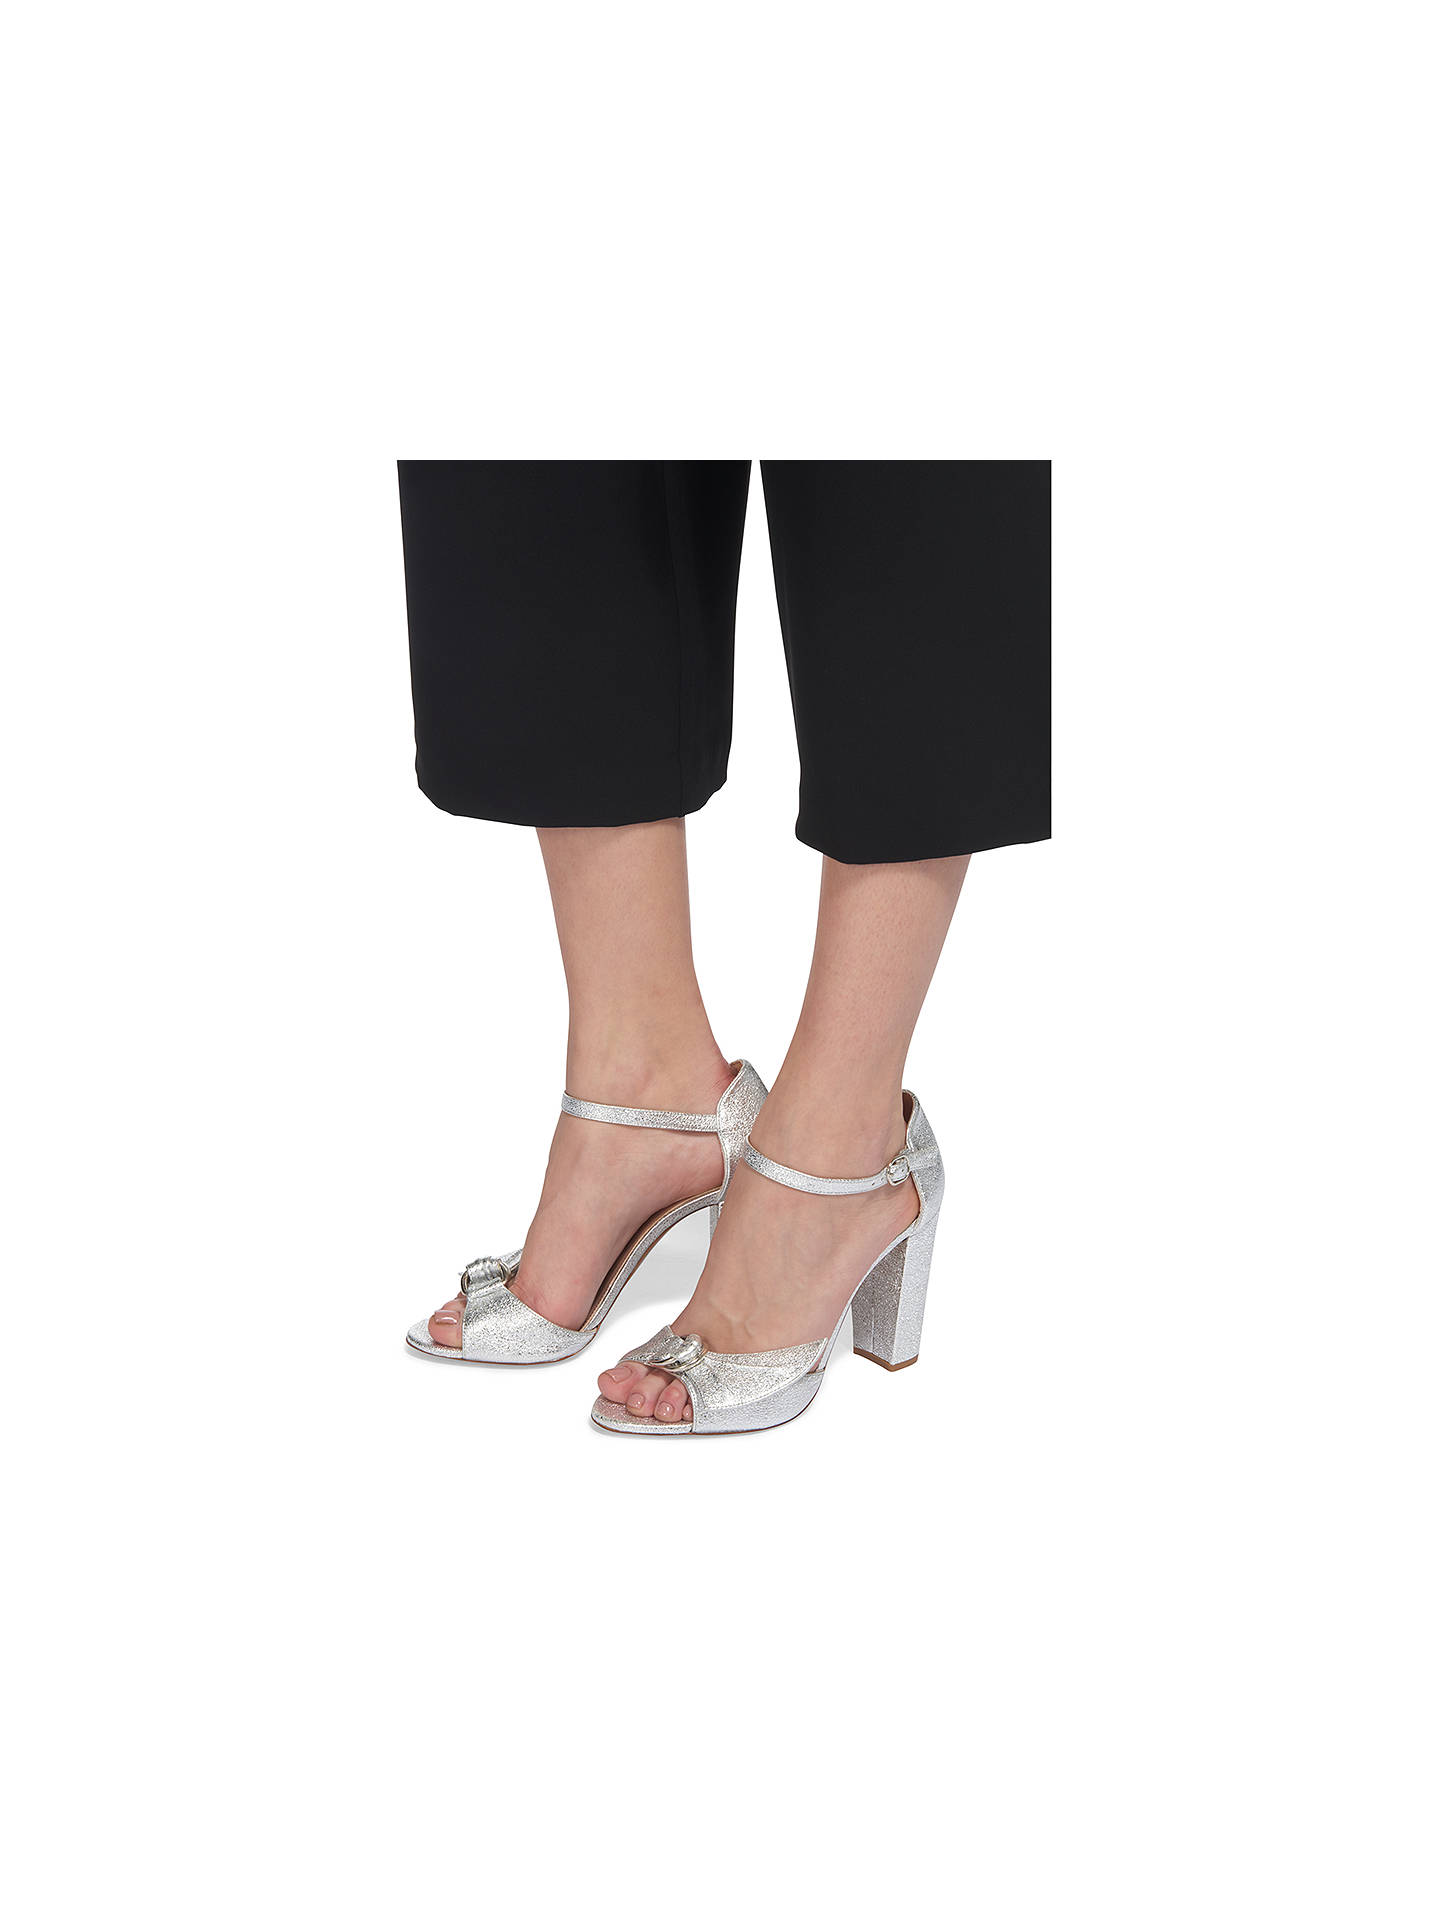 BuyWhistles Thurza Block Heeled Sandals, Silver, 3 Online at johnlewis.com